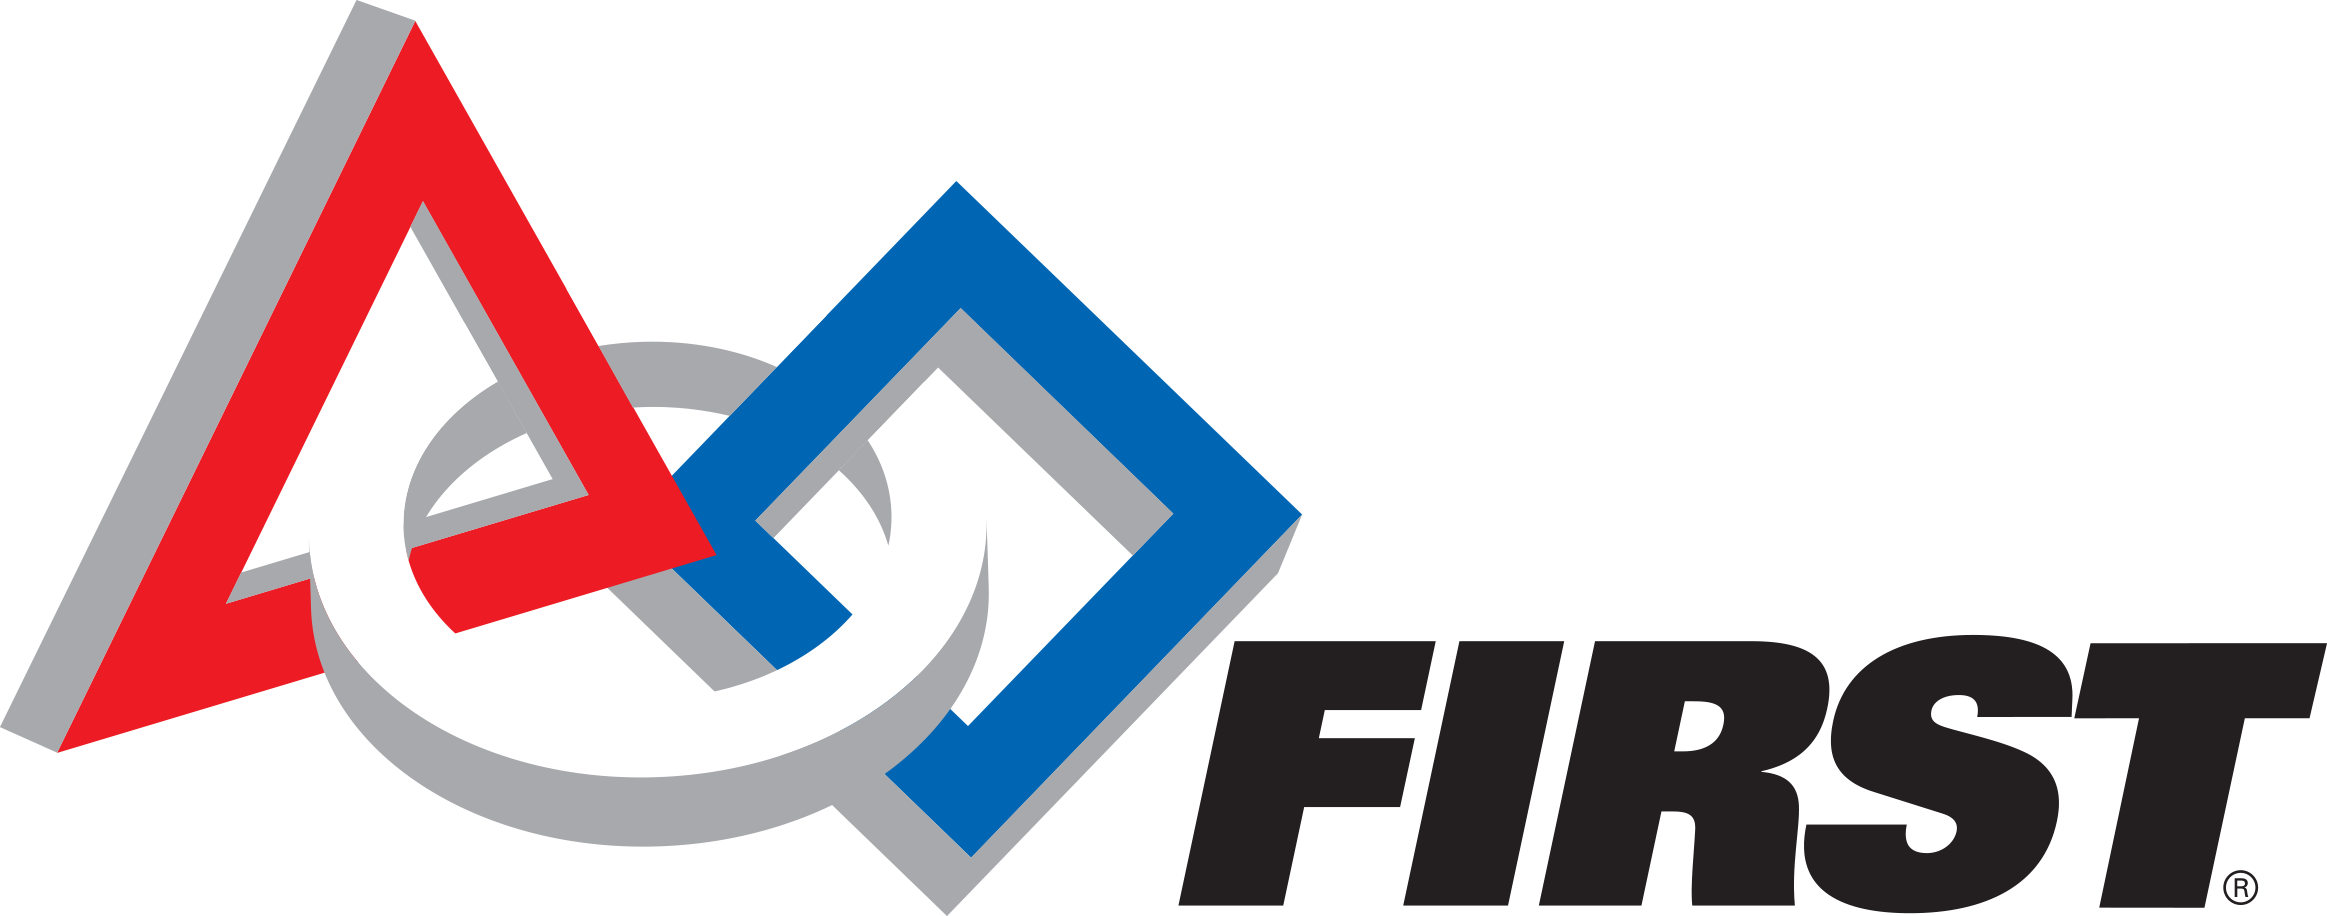 Logo for FIRST Robotics